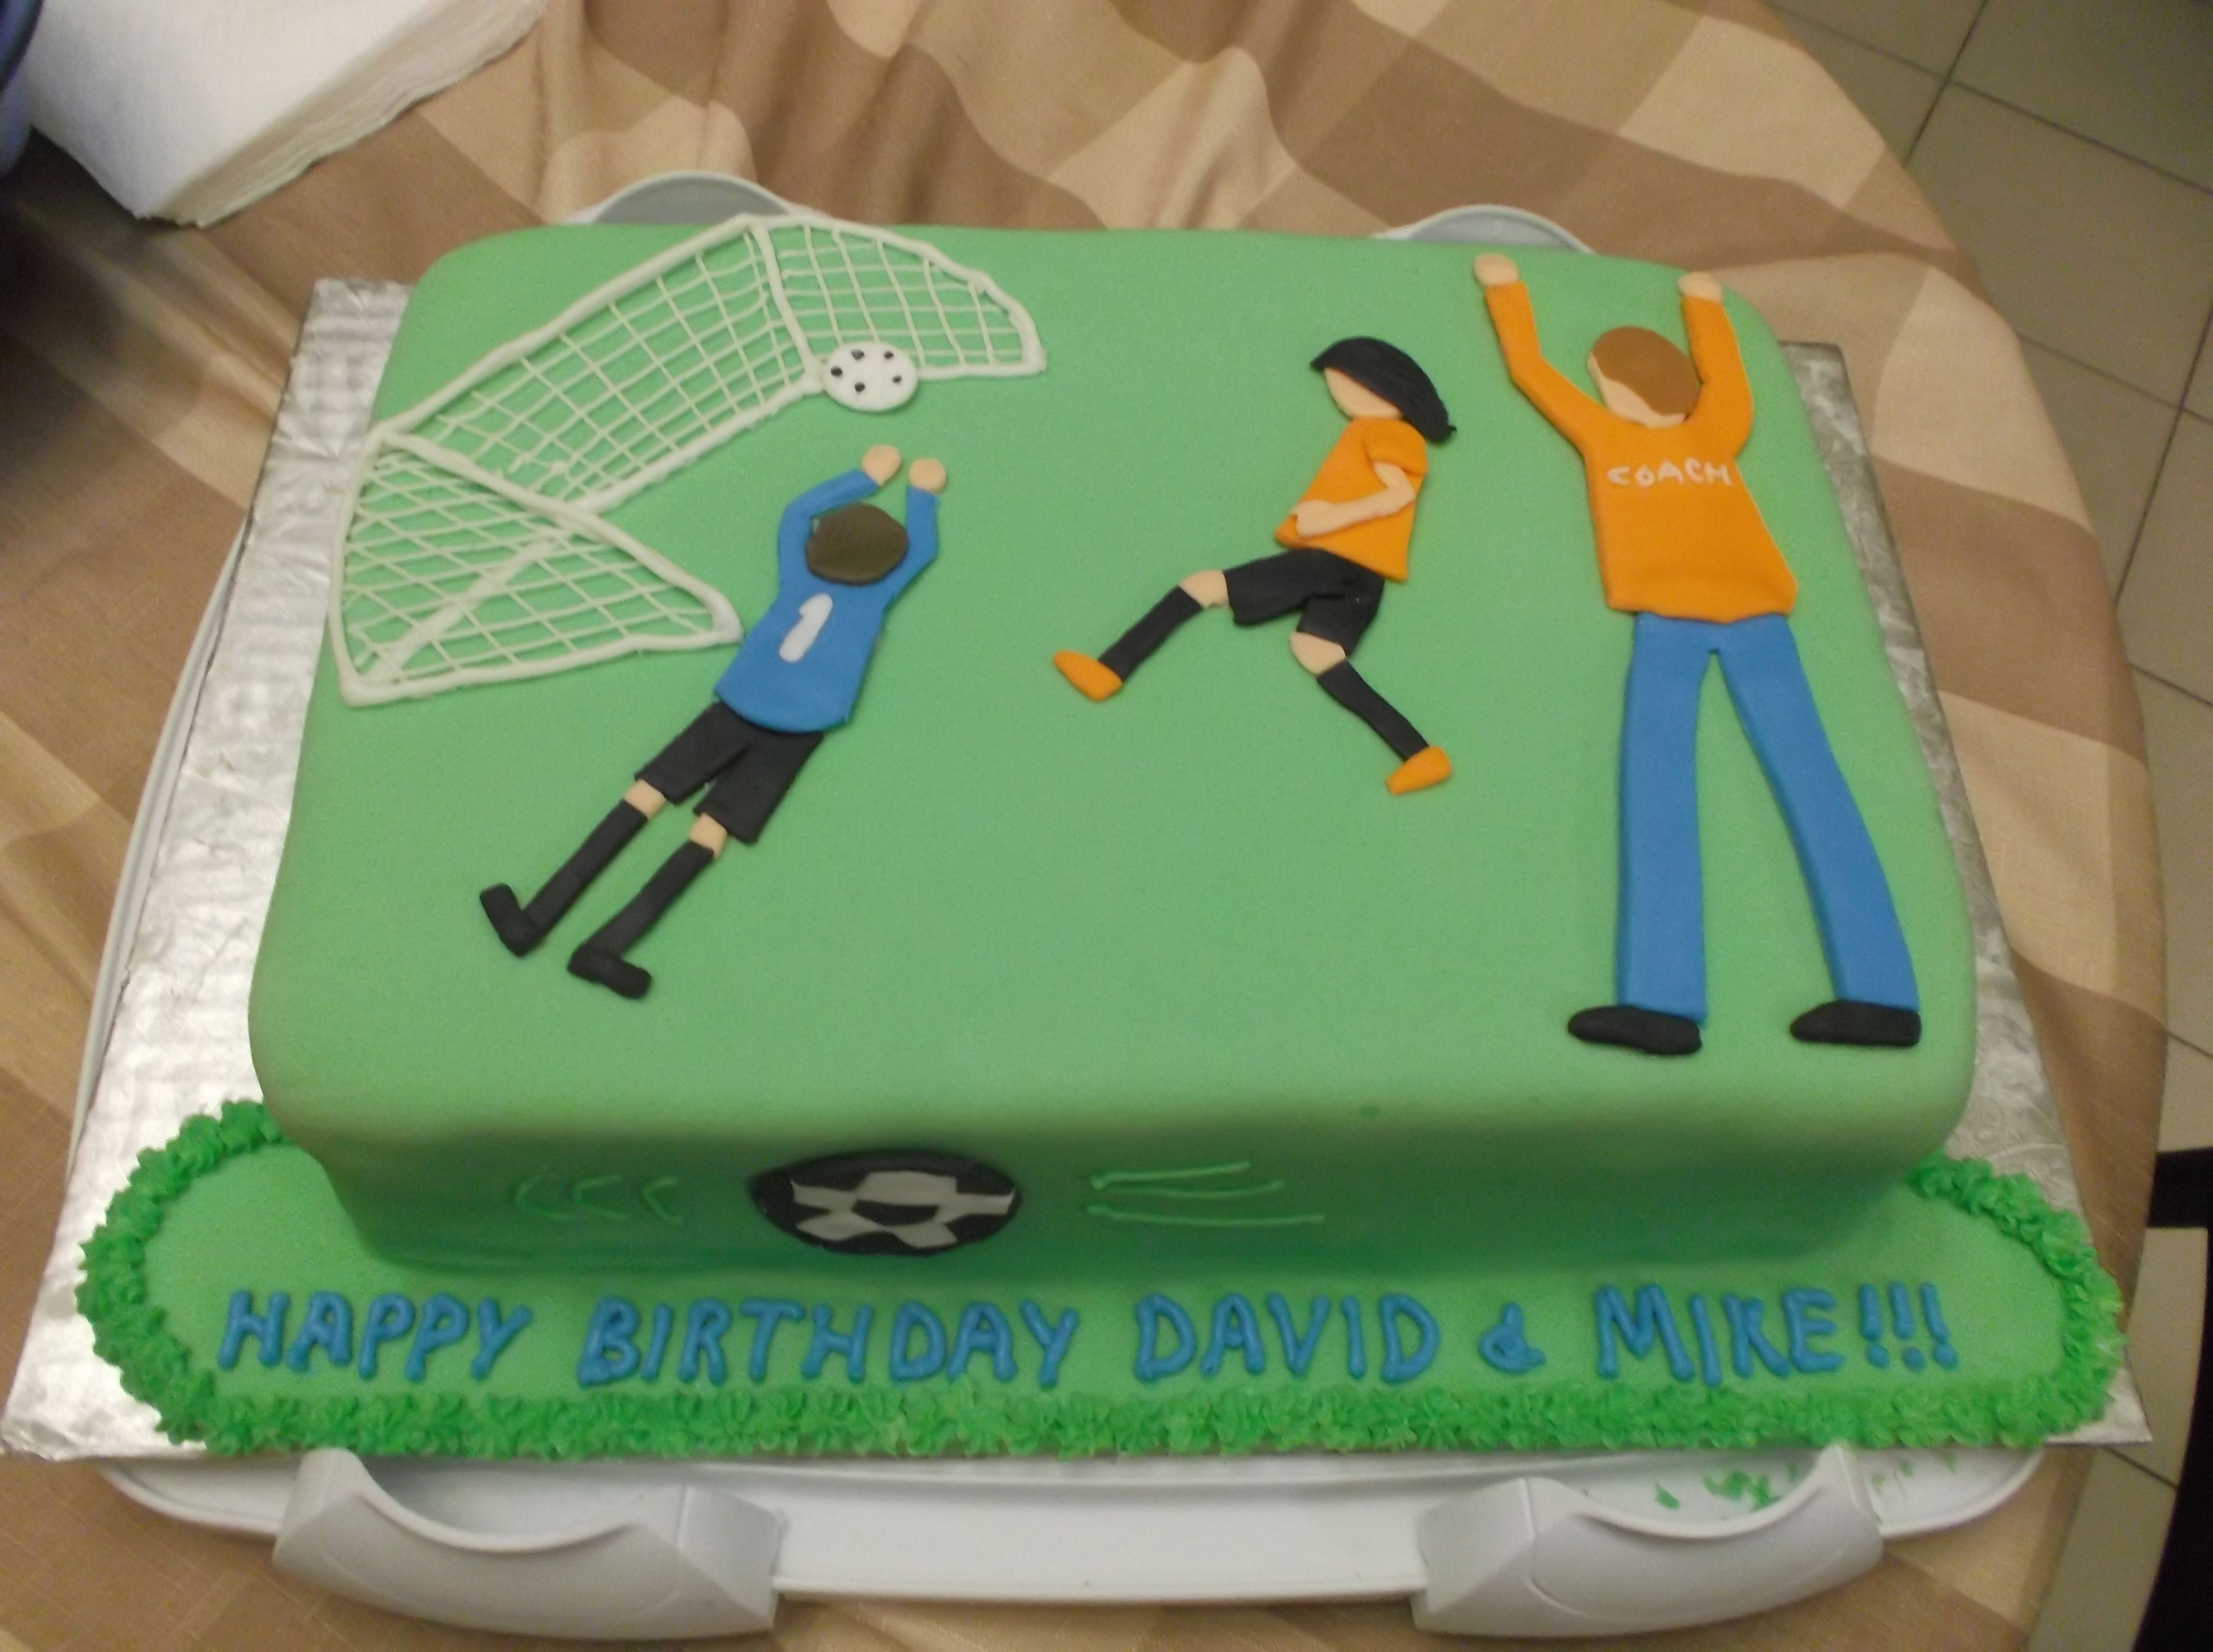 Soccer cake for father & son